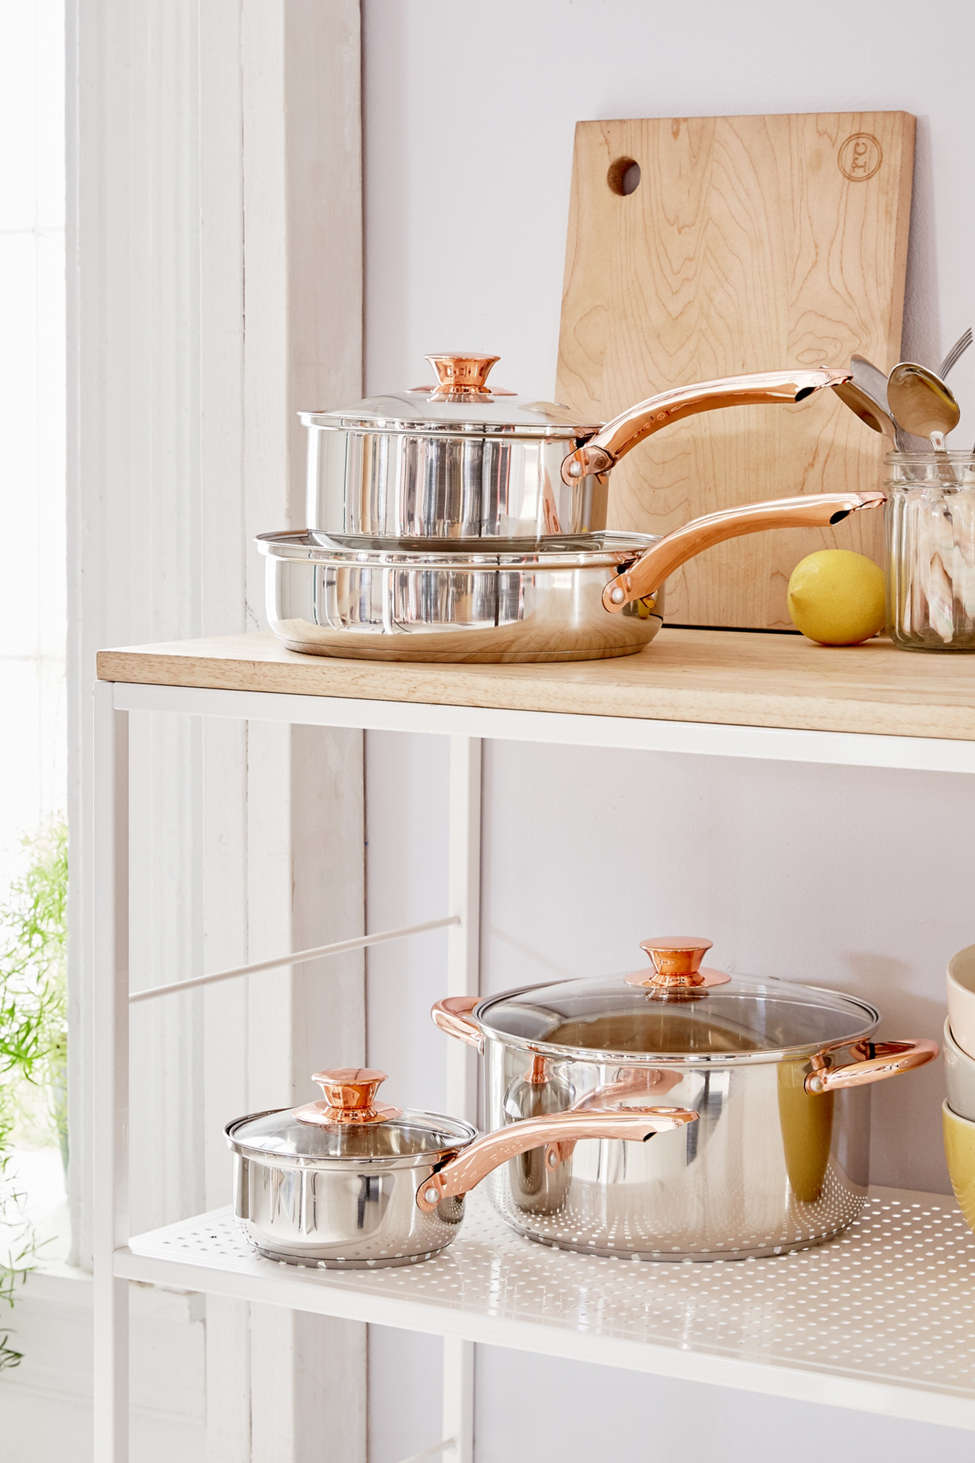 Slide View: 1: 4-Piece Copper-Trimmed Cookware Set